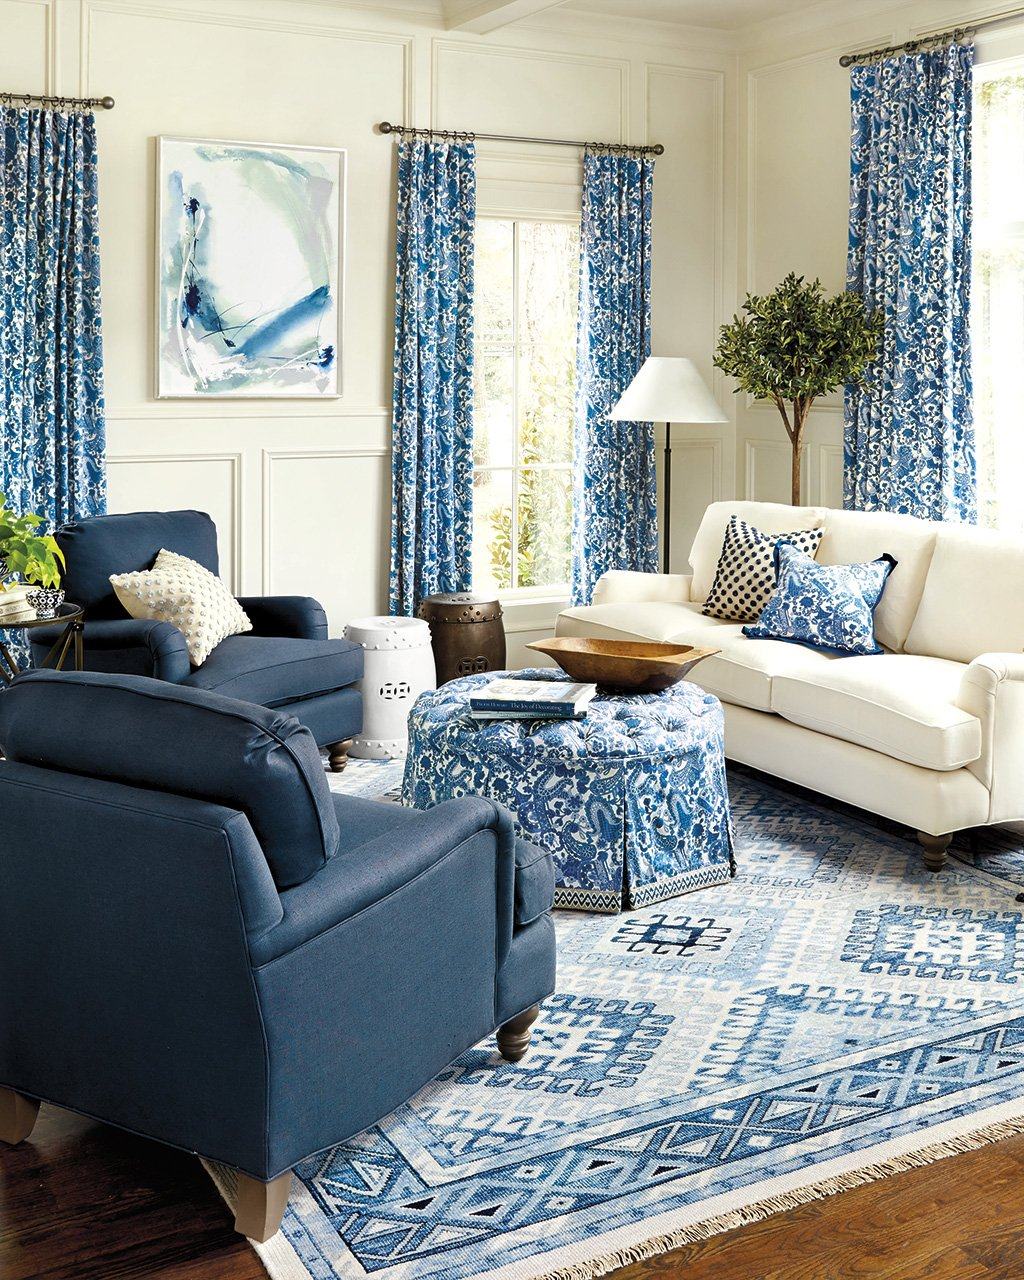 15 Ways to Layout Your Living Room - How To Decorate